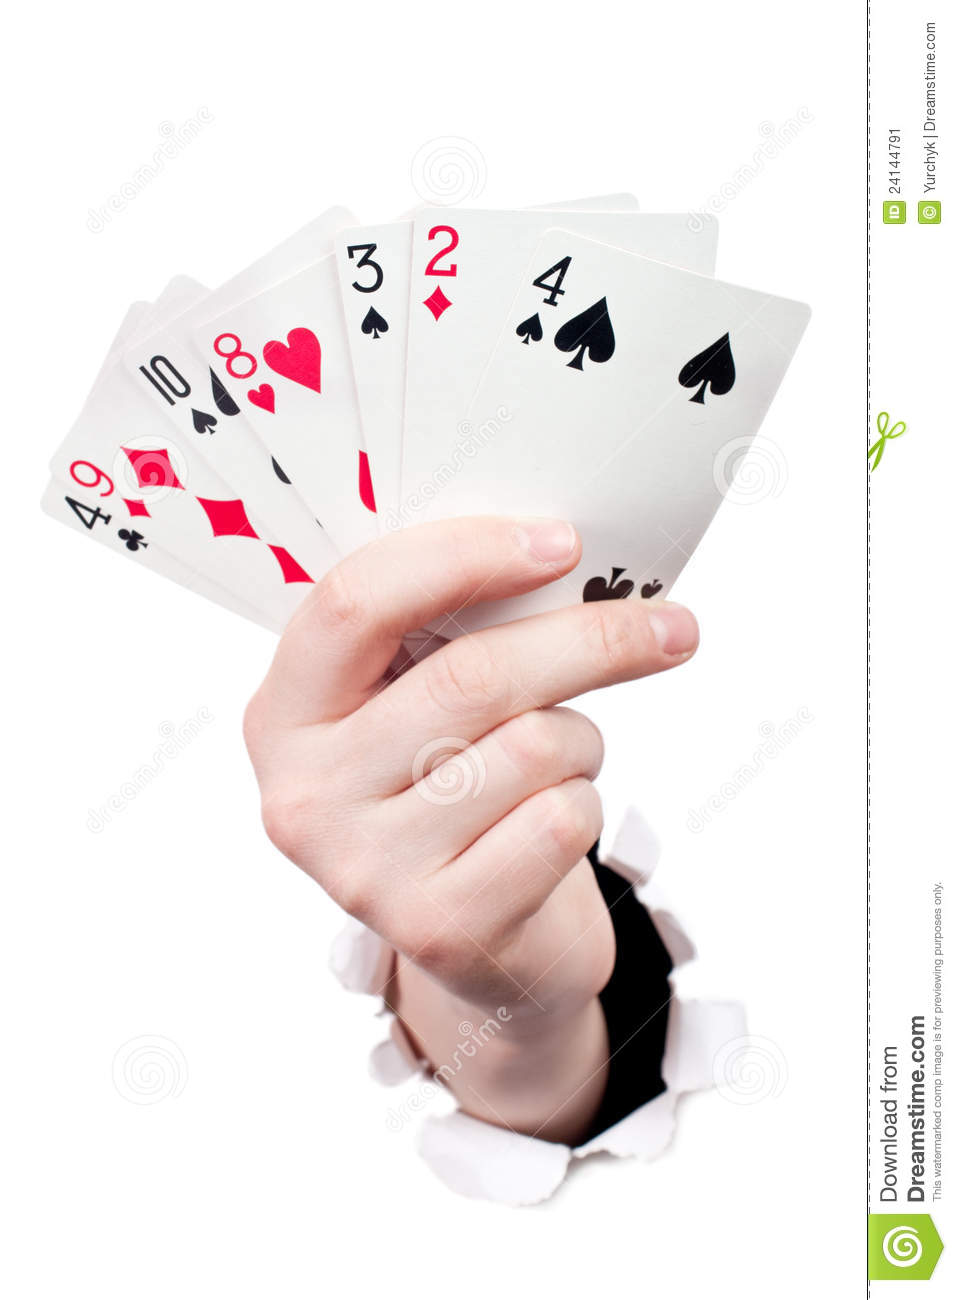 hands holding cards